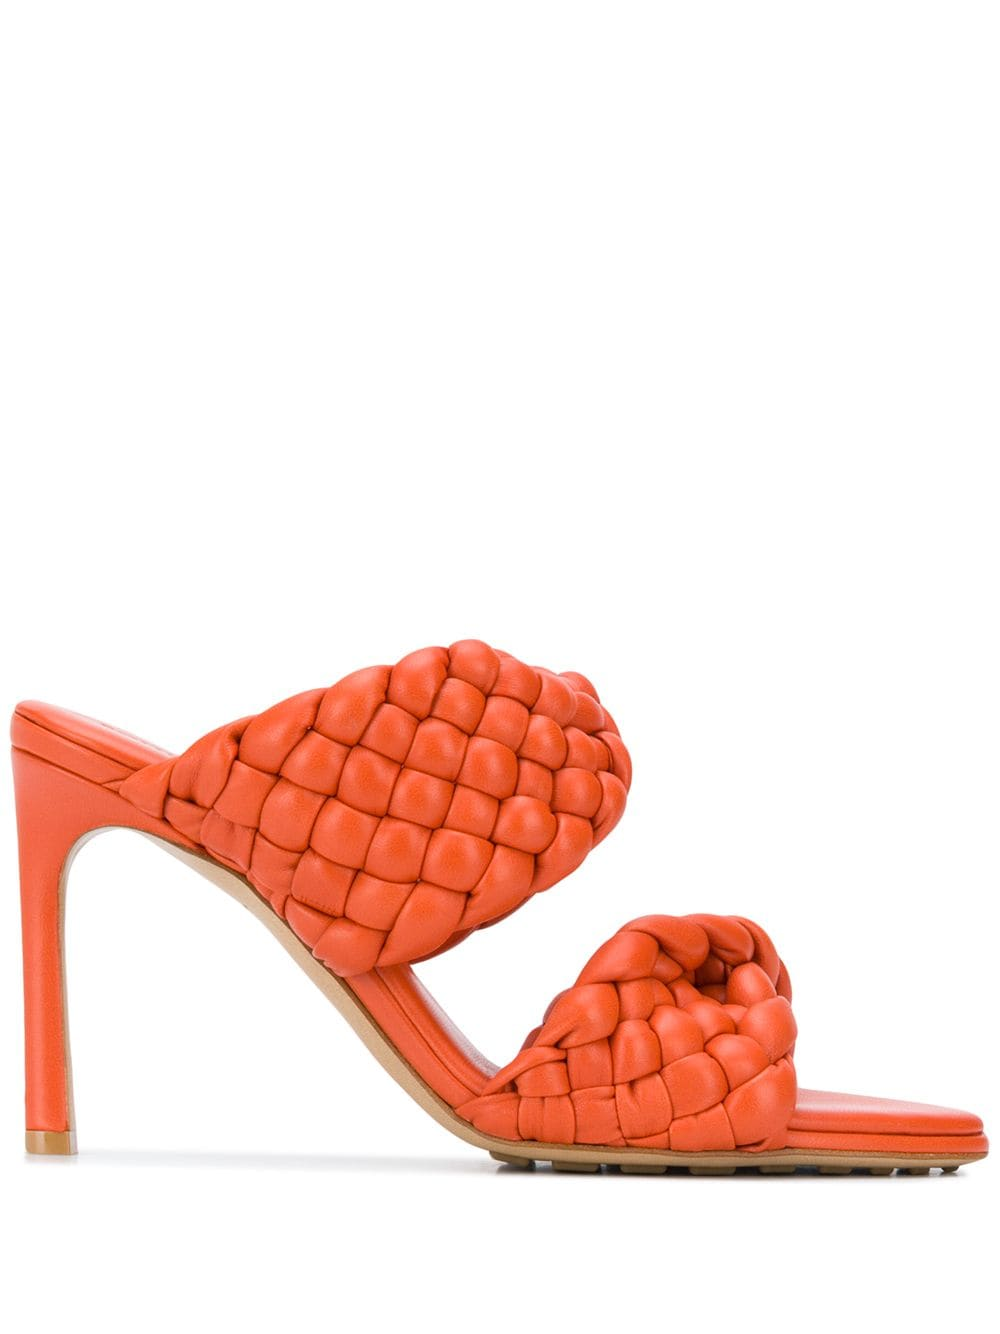 The Curve Sandal - Orange